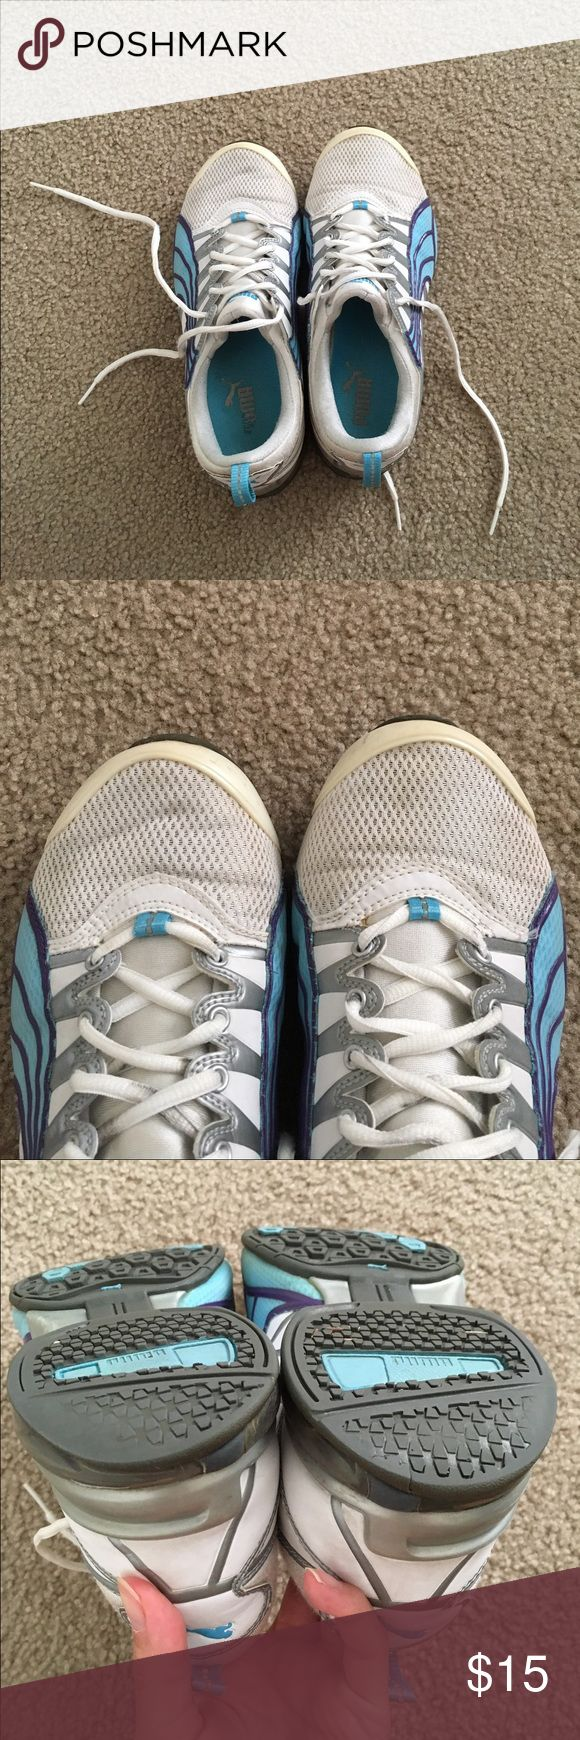 FINAL PRICE Puma tennis shoe Freshly laundered. Couldn't get rid off the front dirt/stain thingy. Please view pictures closely to look at the wear and tear. No trades. Thanks. Puma Shoes Athletic Shoes